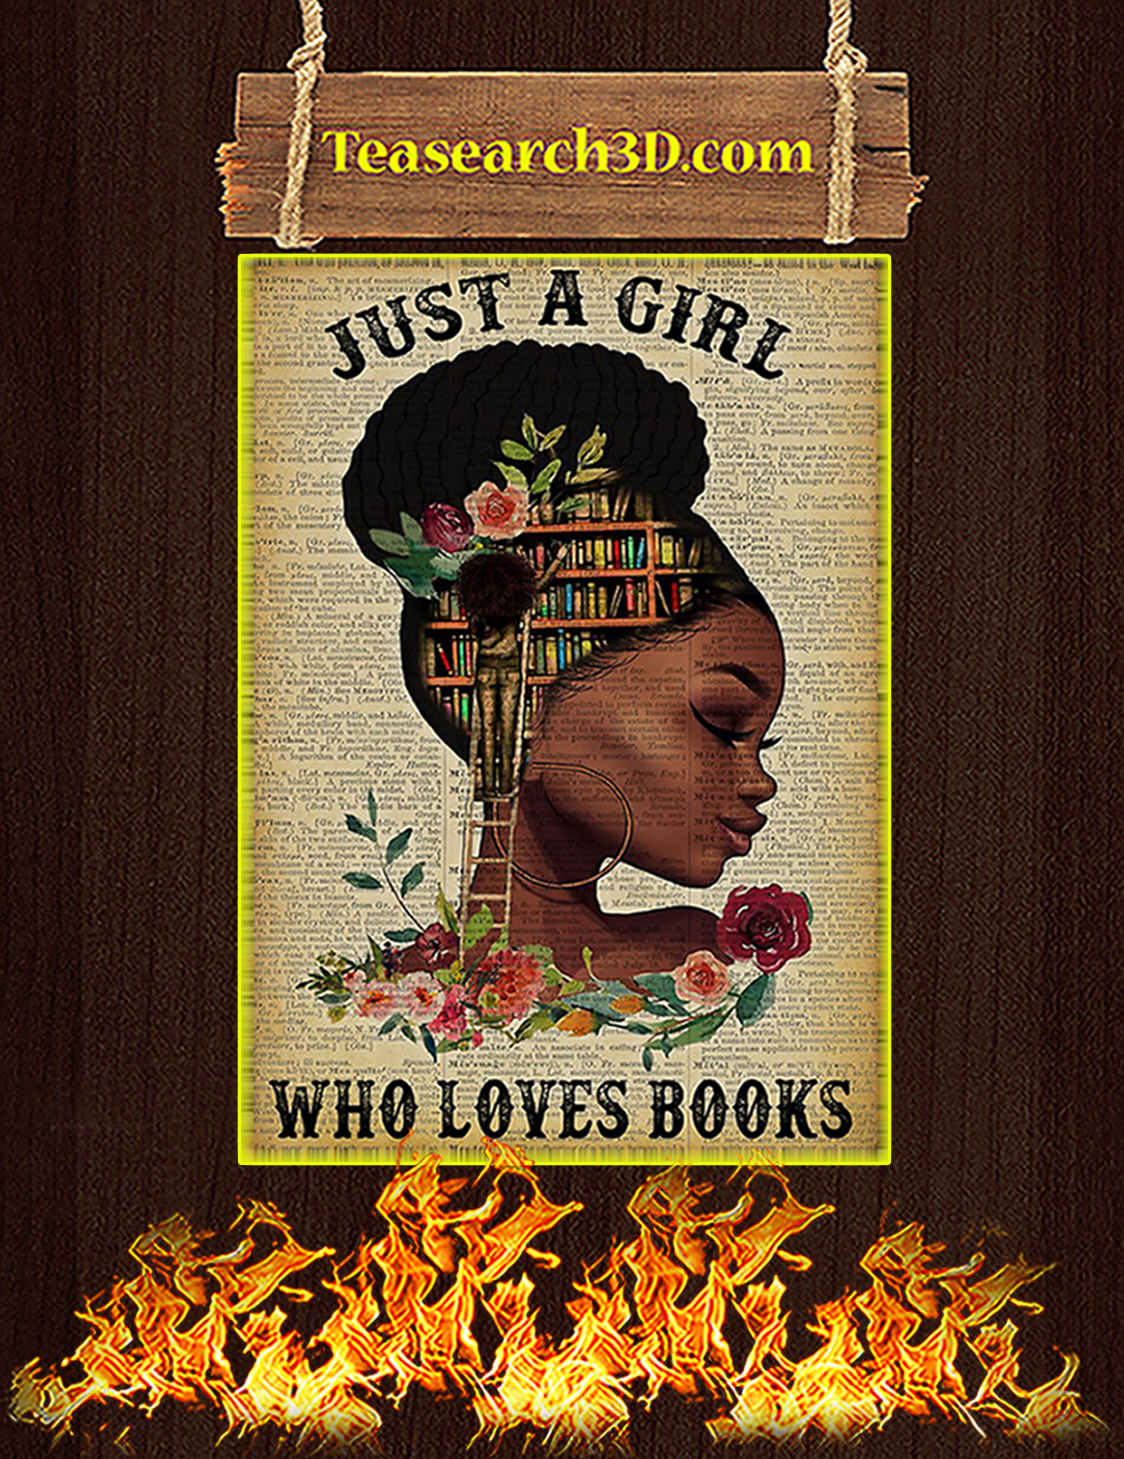 Black girl Just a girl who loves books poster A3